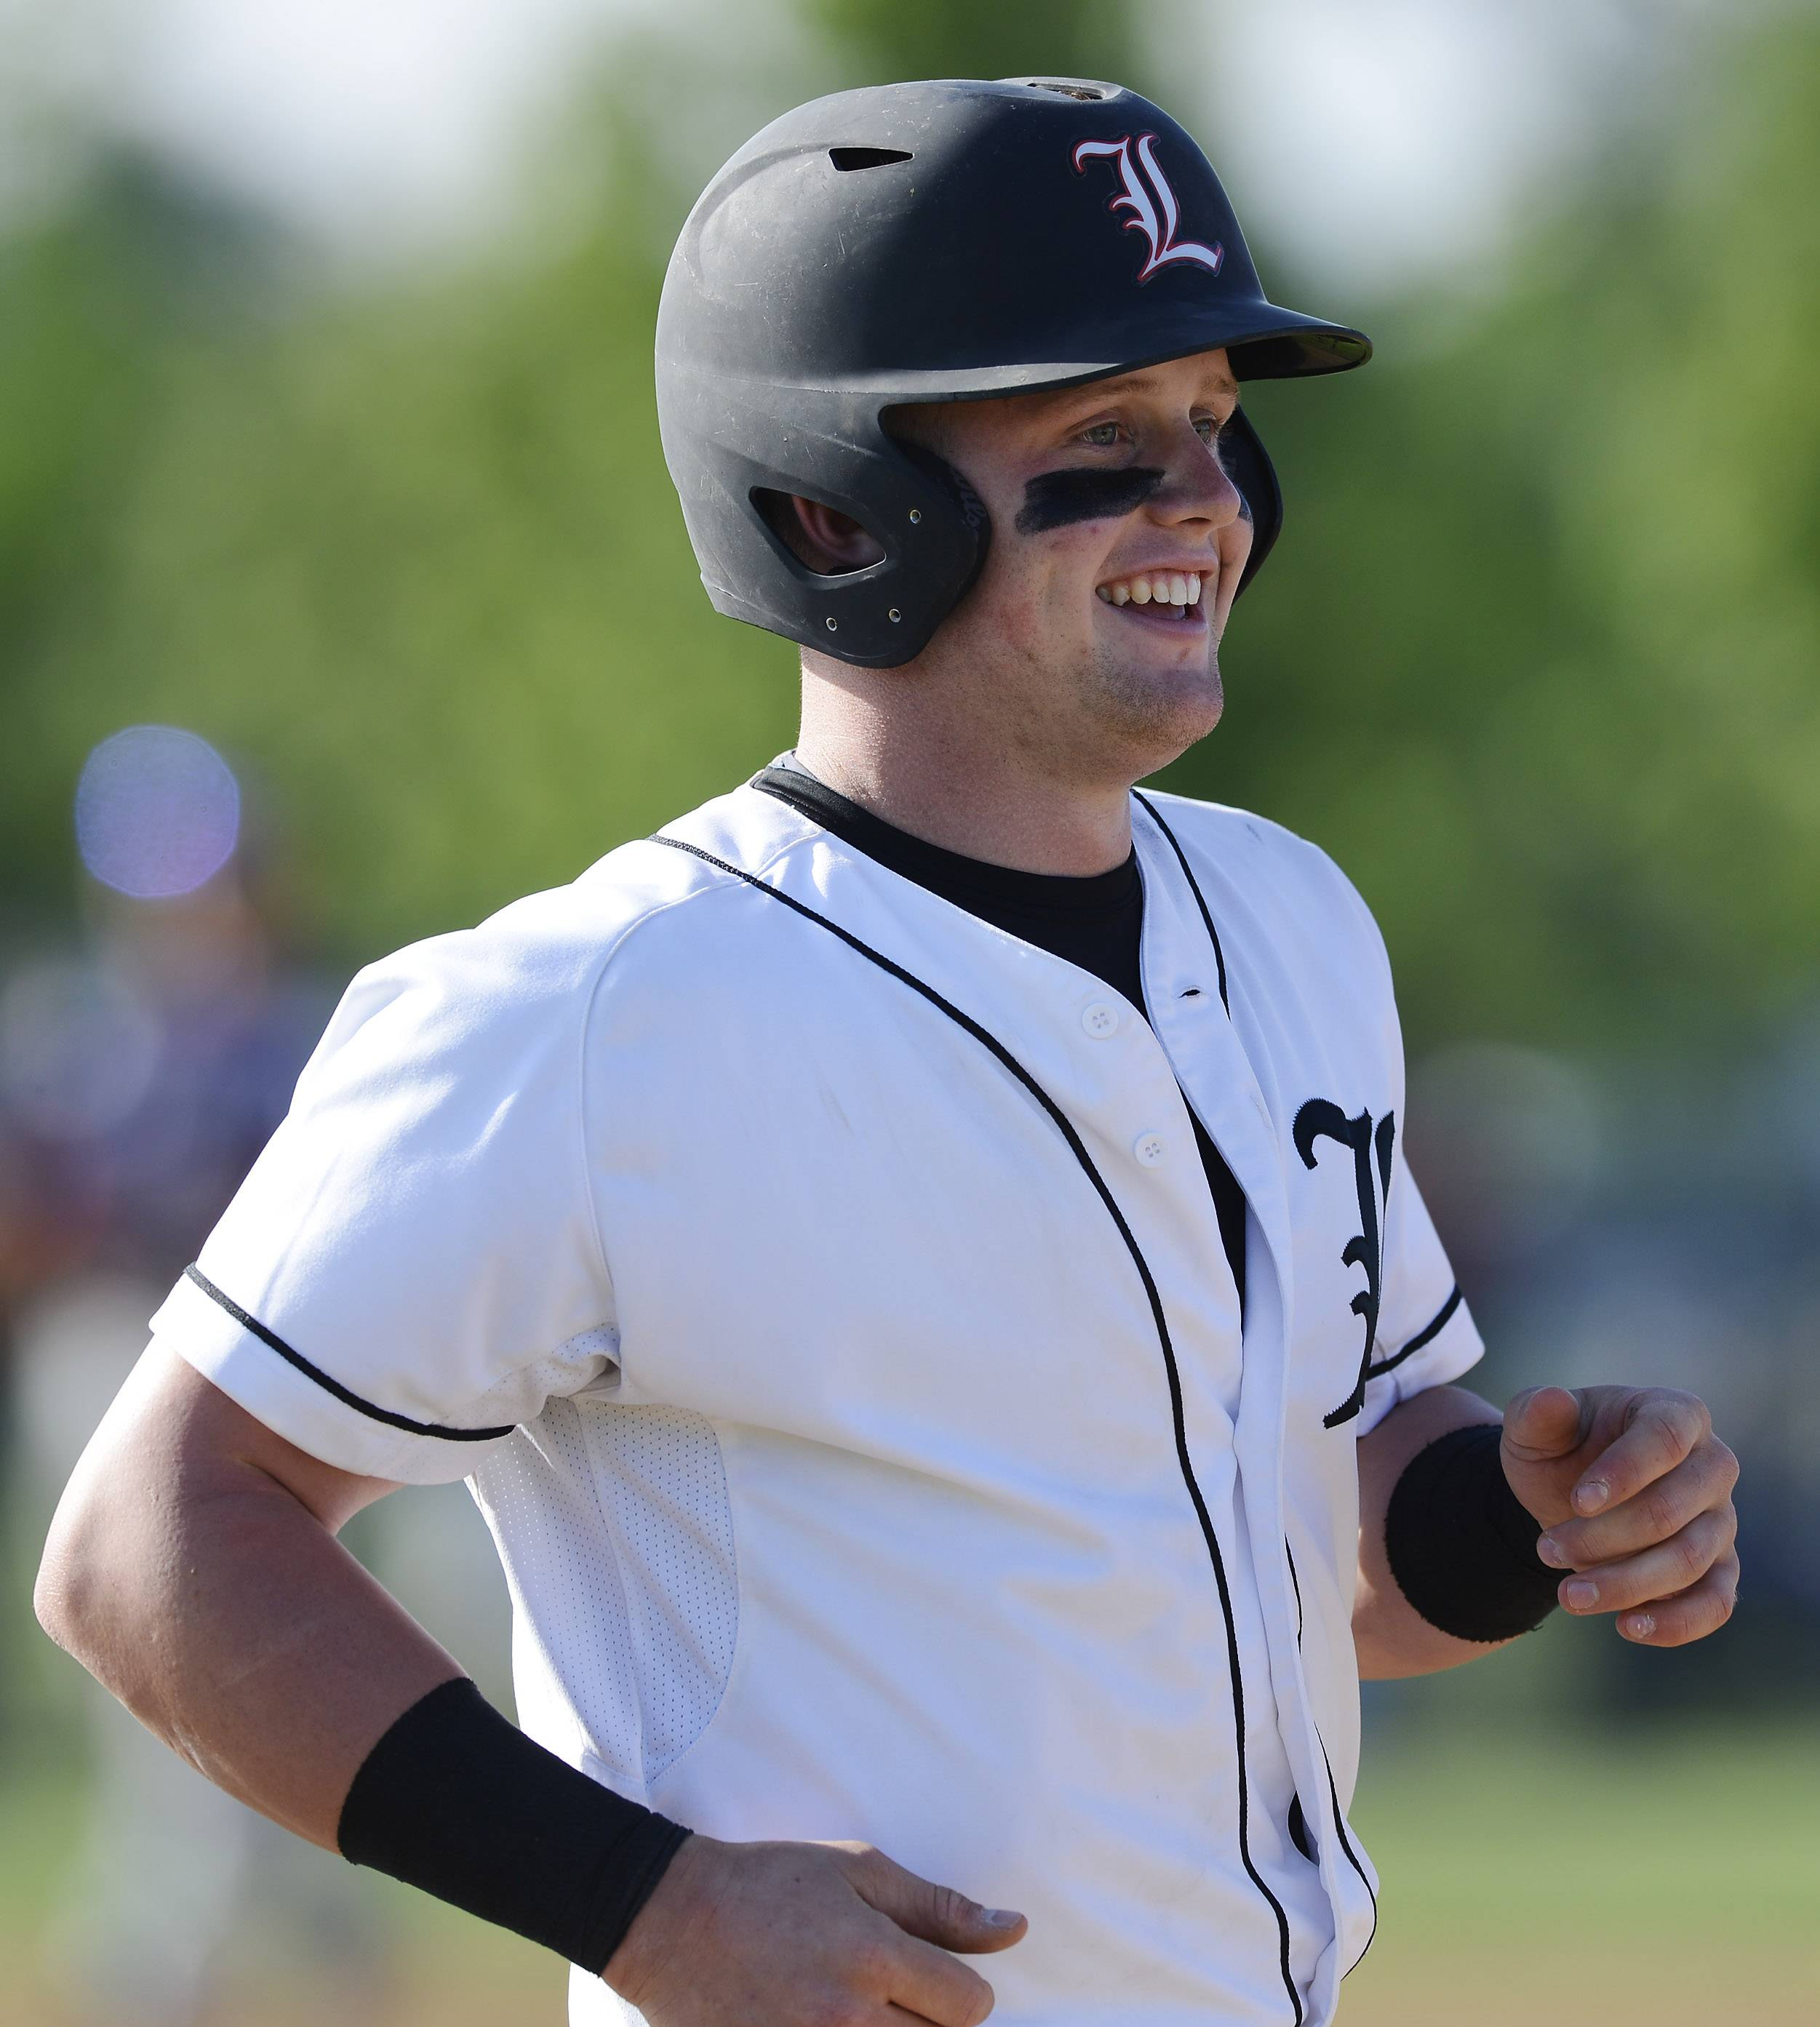 Libertyville's Evan Skoug smiles after drawing an intentional walk with runners on first and third during Class 4A baseball sectional semifinal play at Glenbrook South on Wednesday.